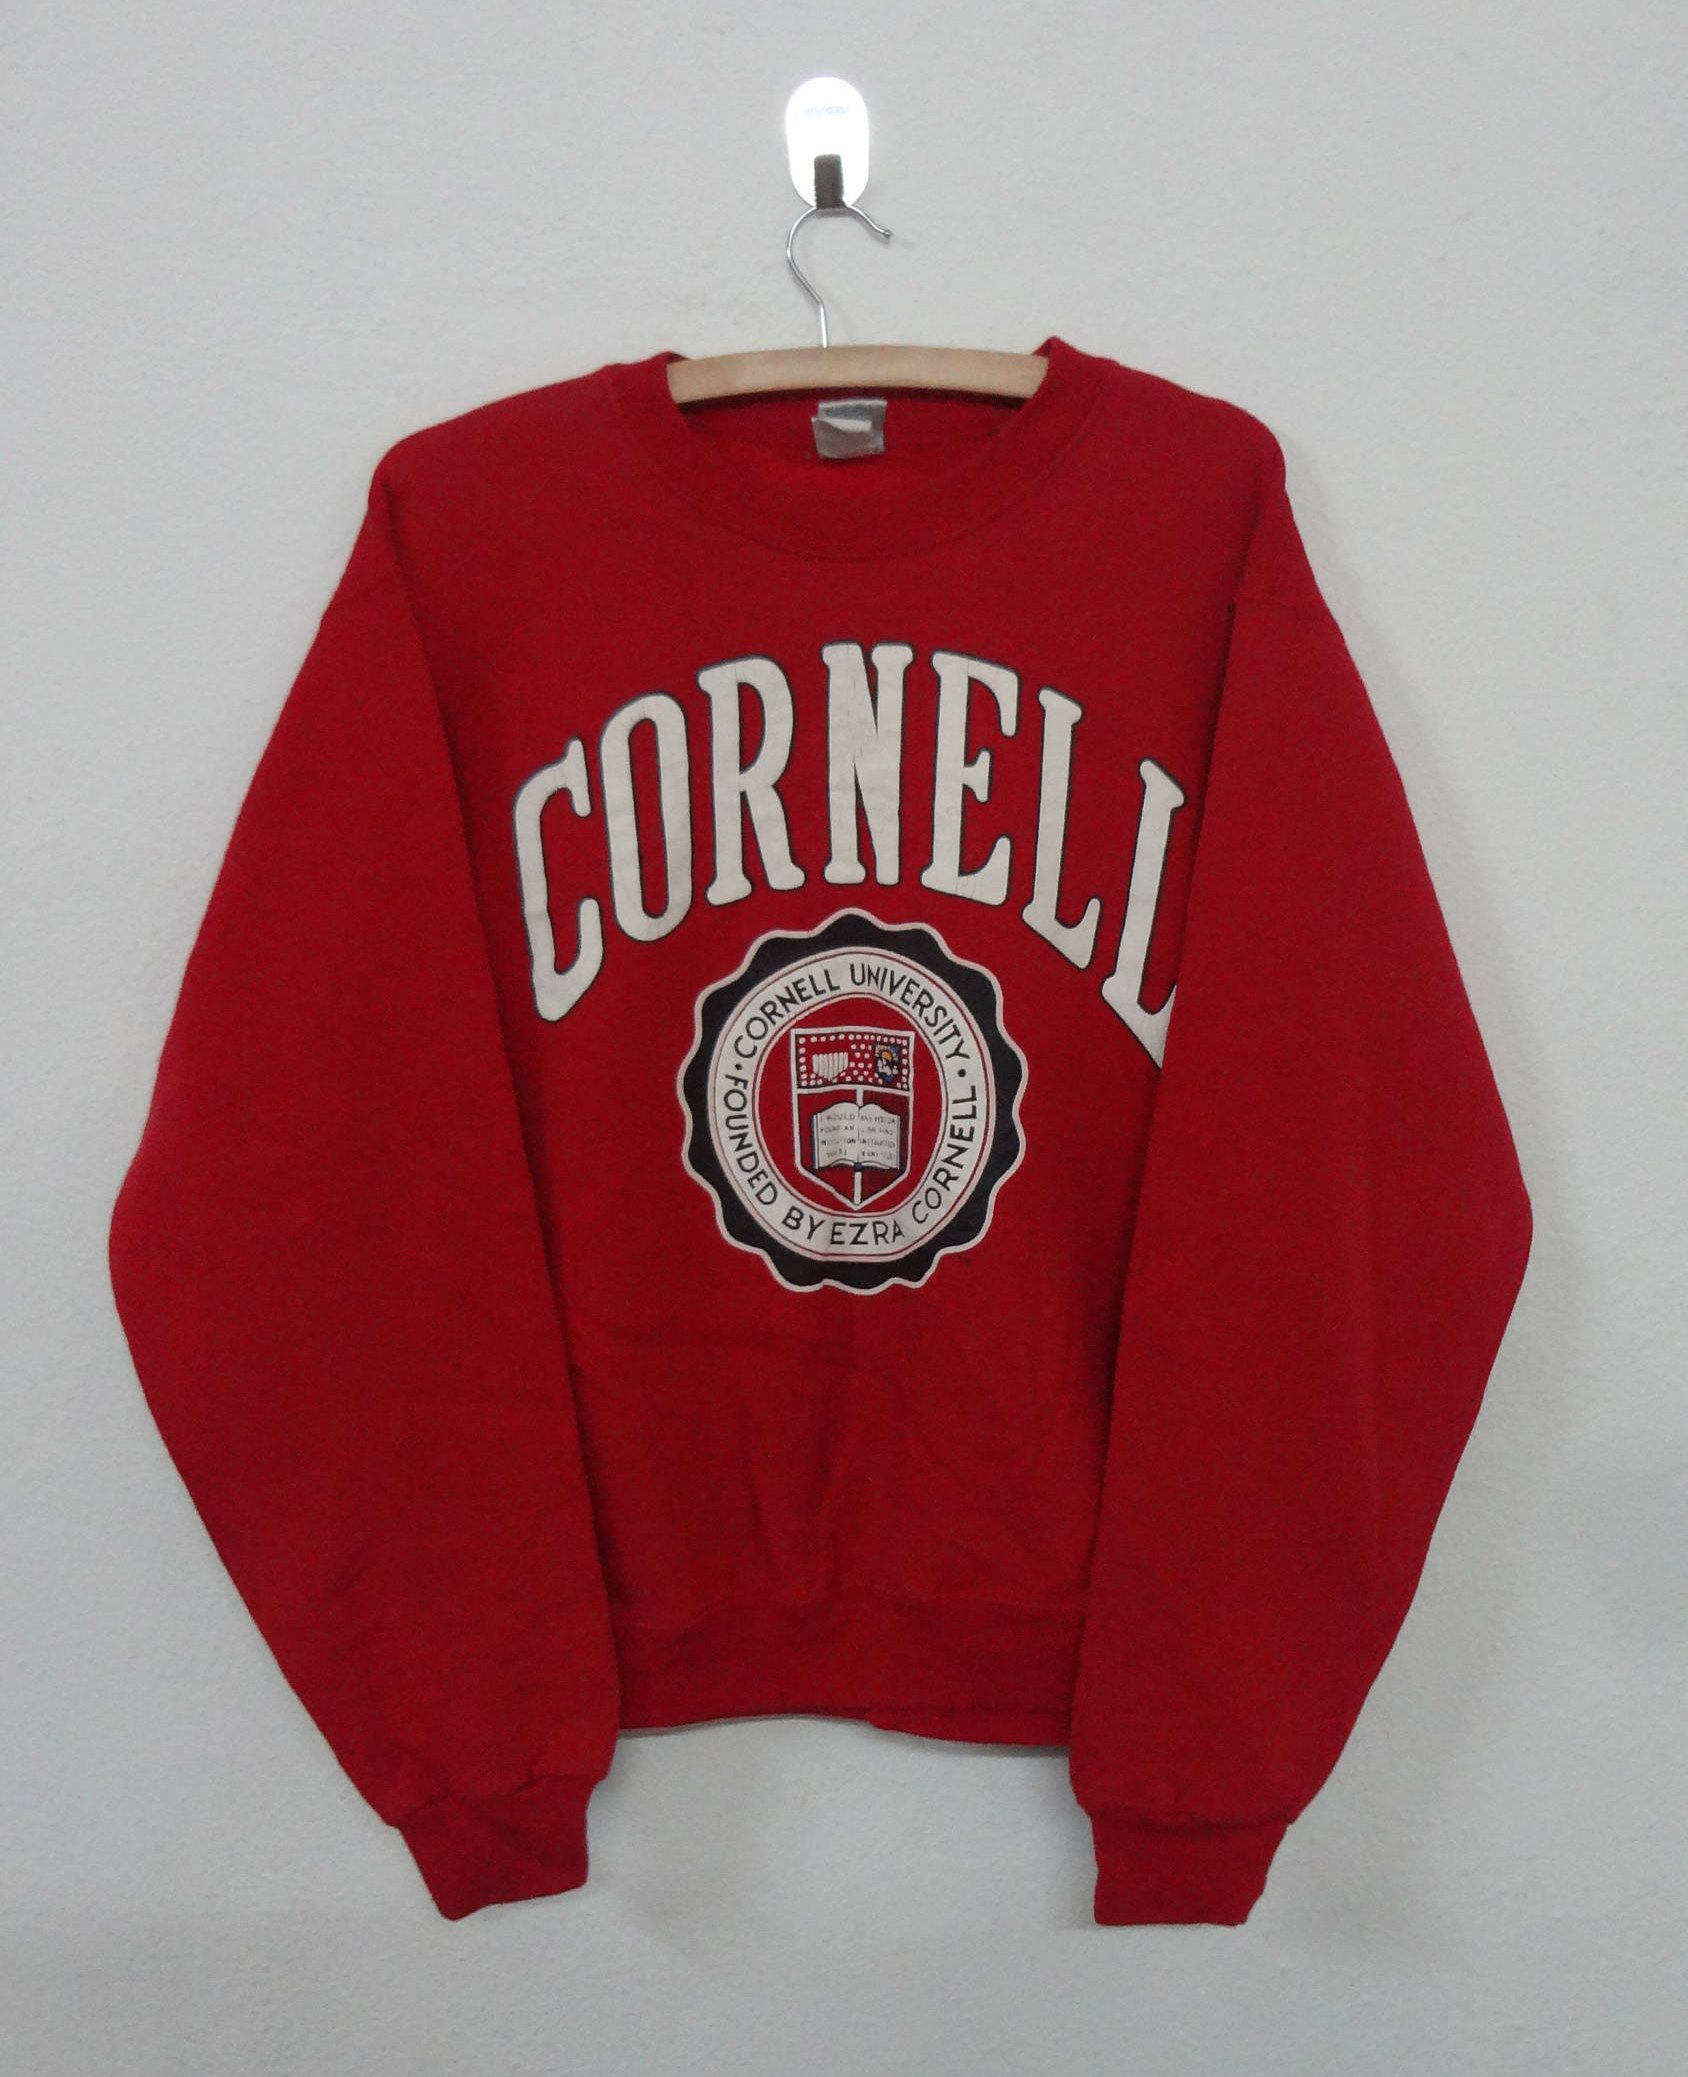 Vintage Cornell University Sweatshirt Mens Size M Made In Usa By Notreshop On Etsy Vintage College Sweatshirts College Sweatshirt Outfit Sweatshirts [ 2077 x 1688 Pixel ]